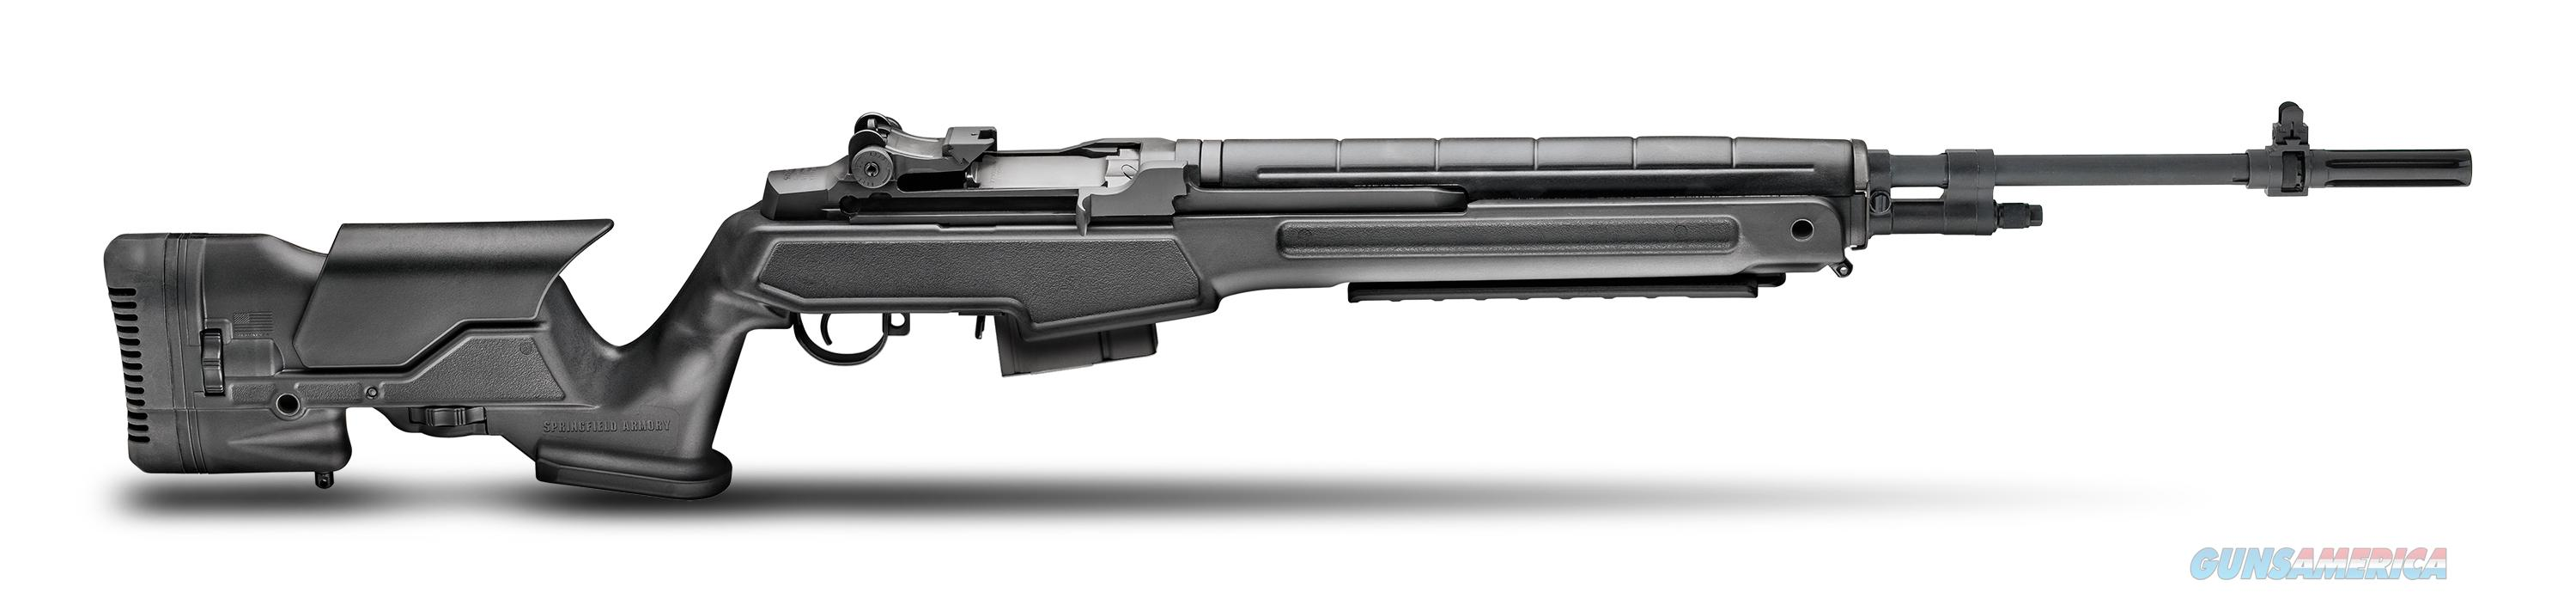 "Springfield Armory M1A Precision Adjustable Stock w/ 22"" Parkerized carbon steel barrel MP9226  Guns > Rifles > Springfield Armory Rifles > M1A/M14"